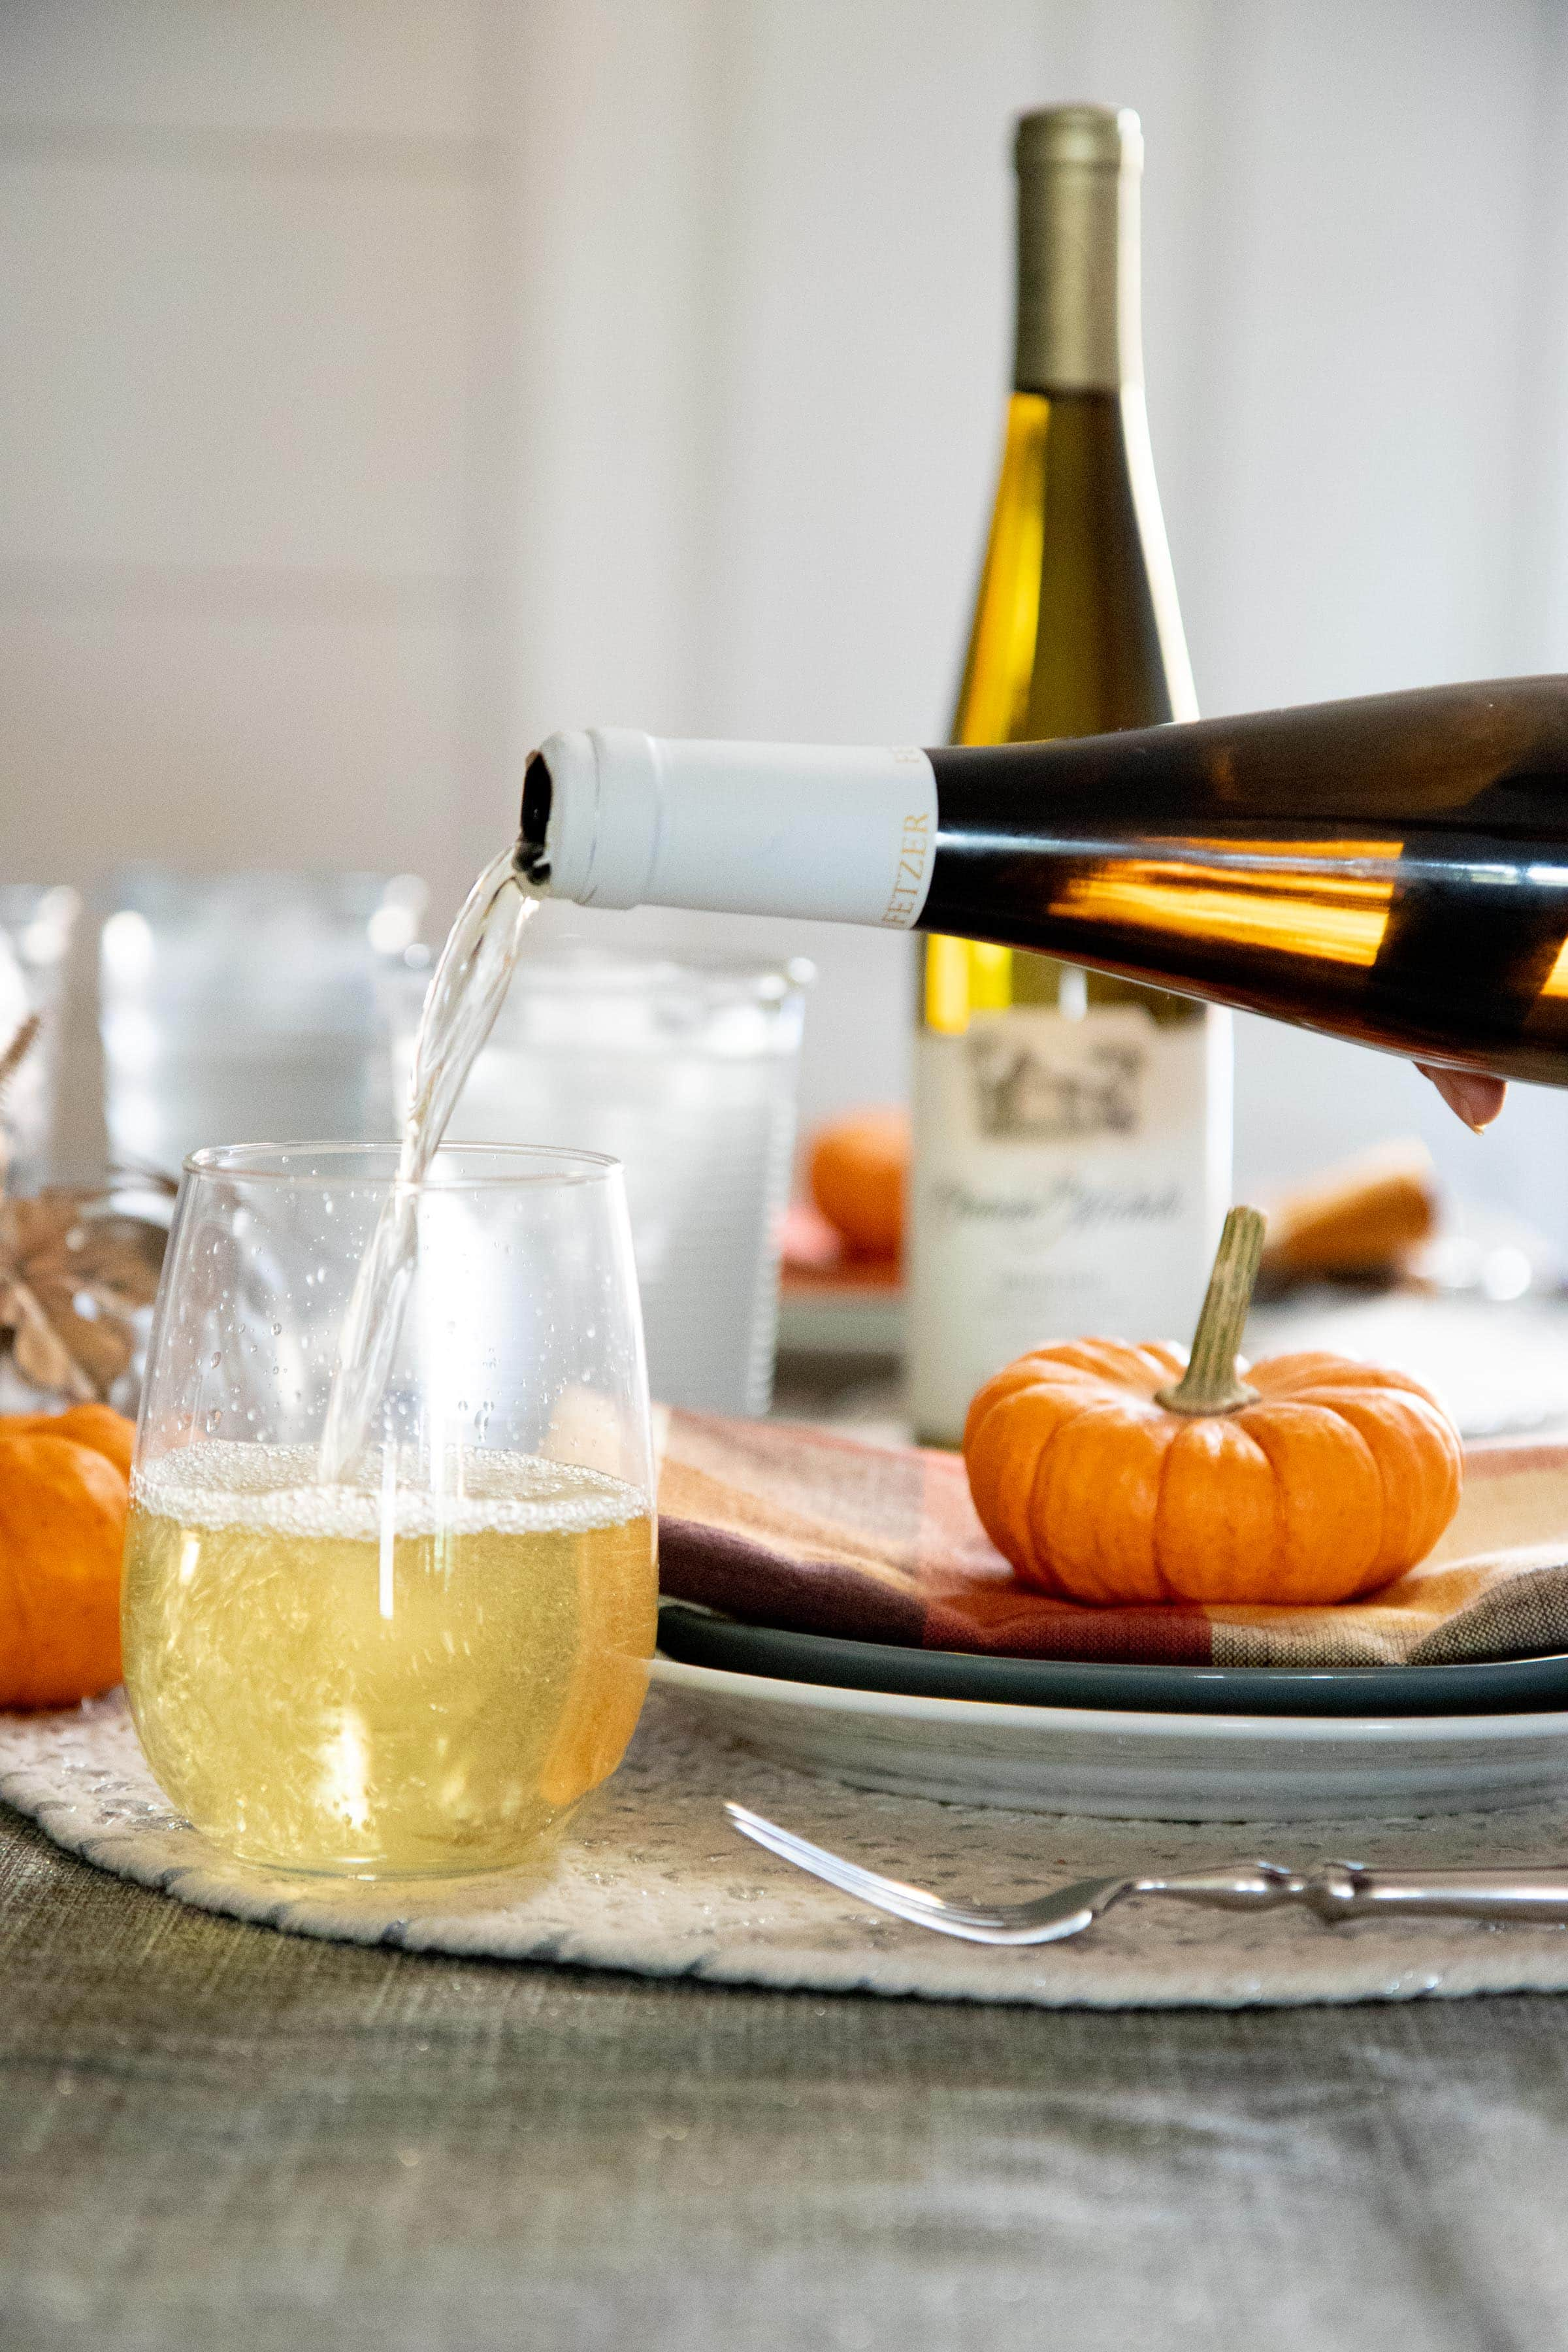 White wine being poured into a stemless glass on a table with fall decorations